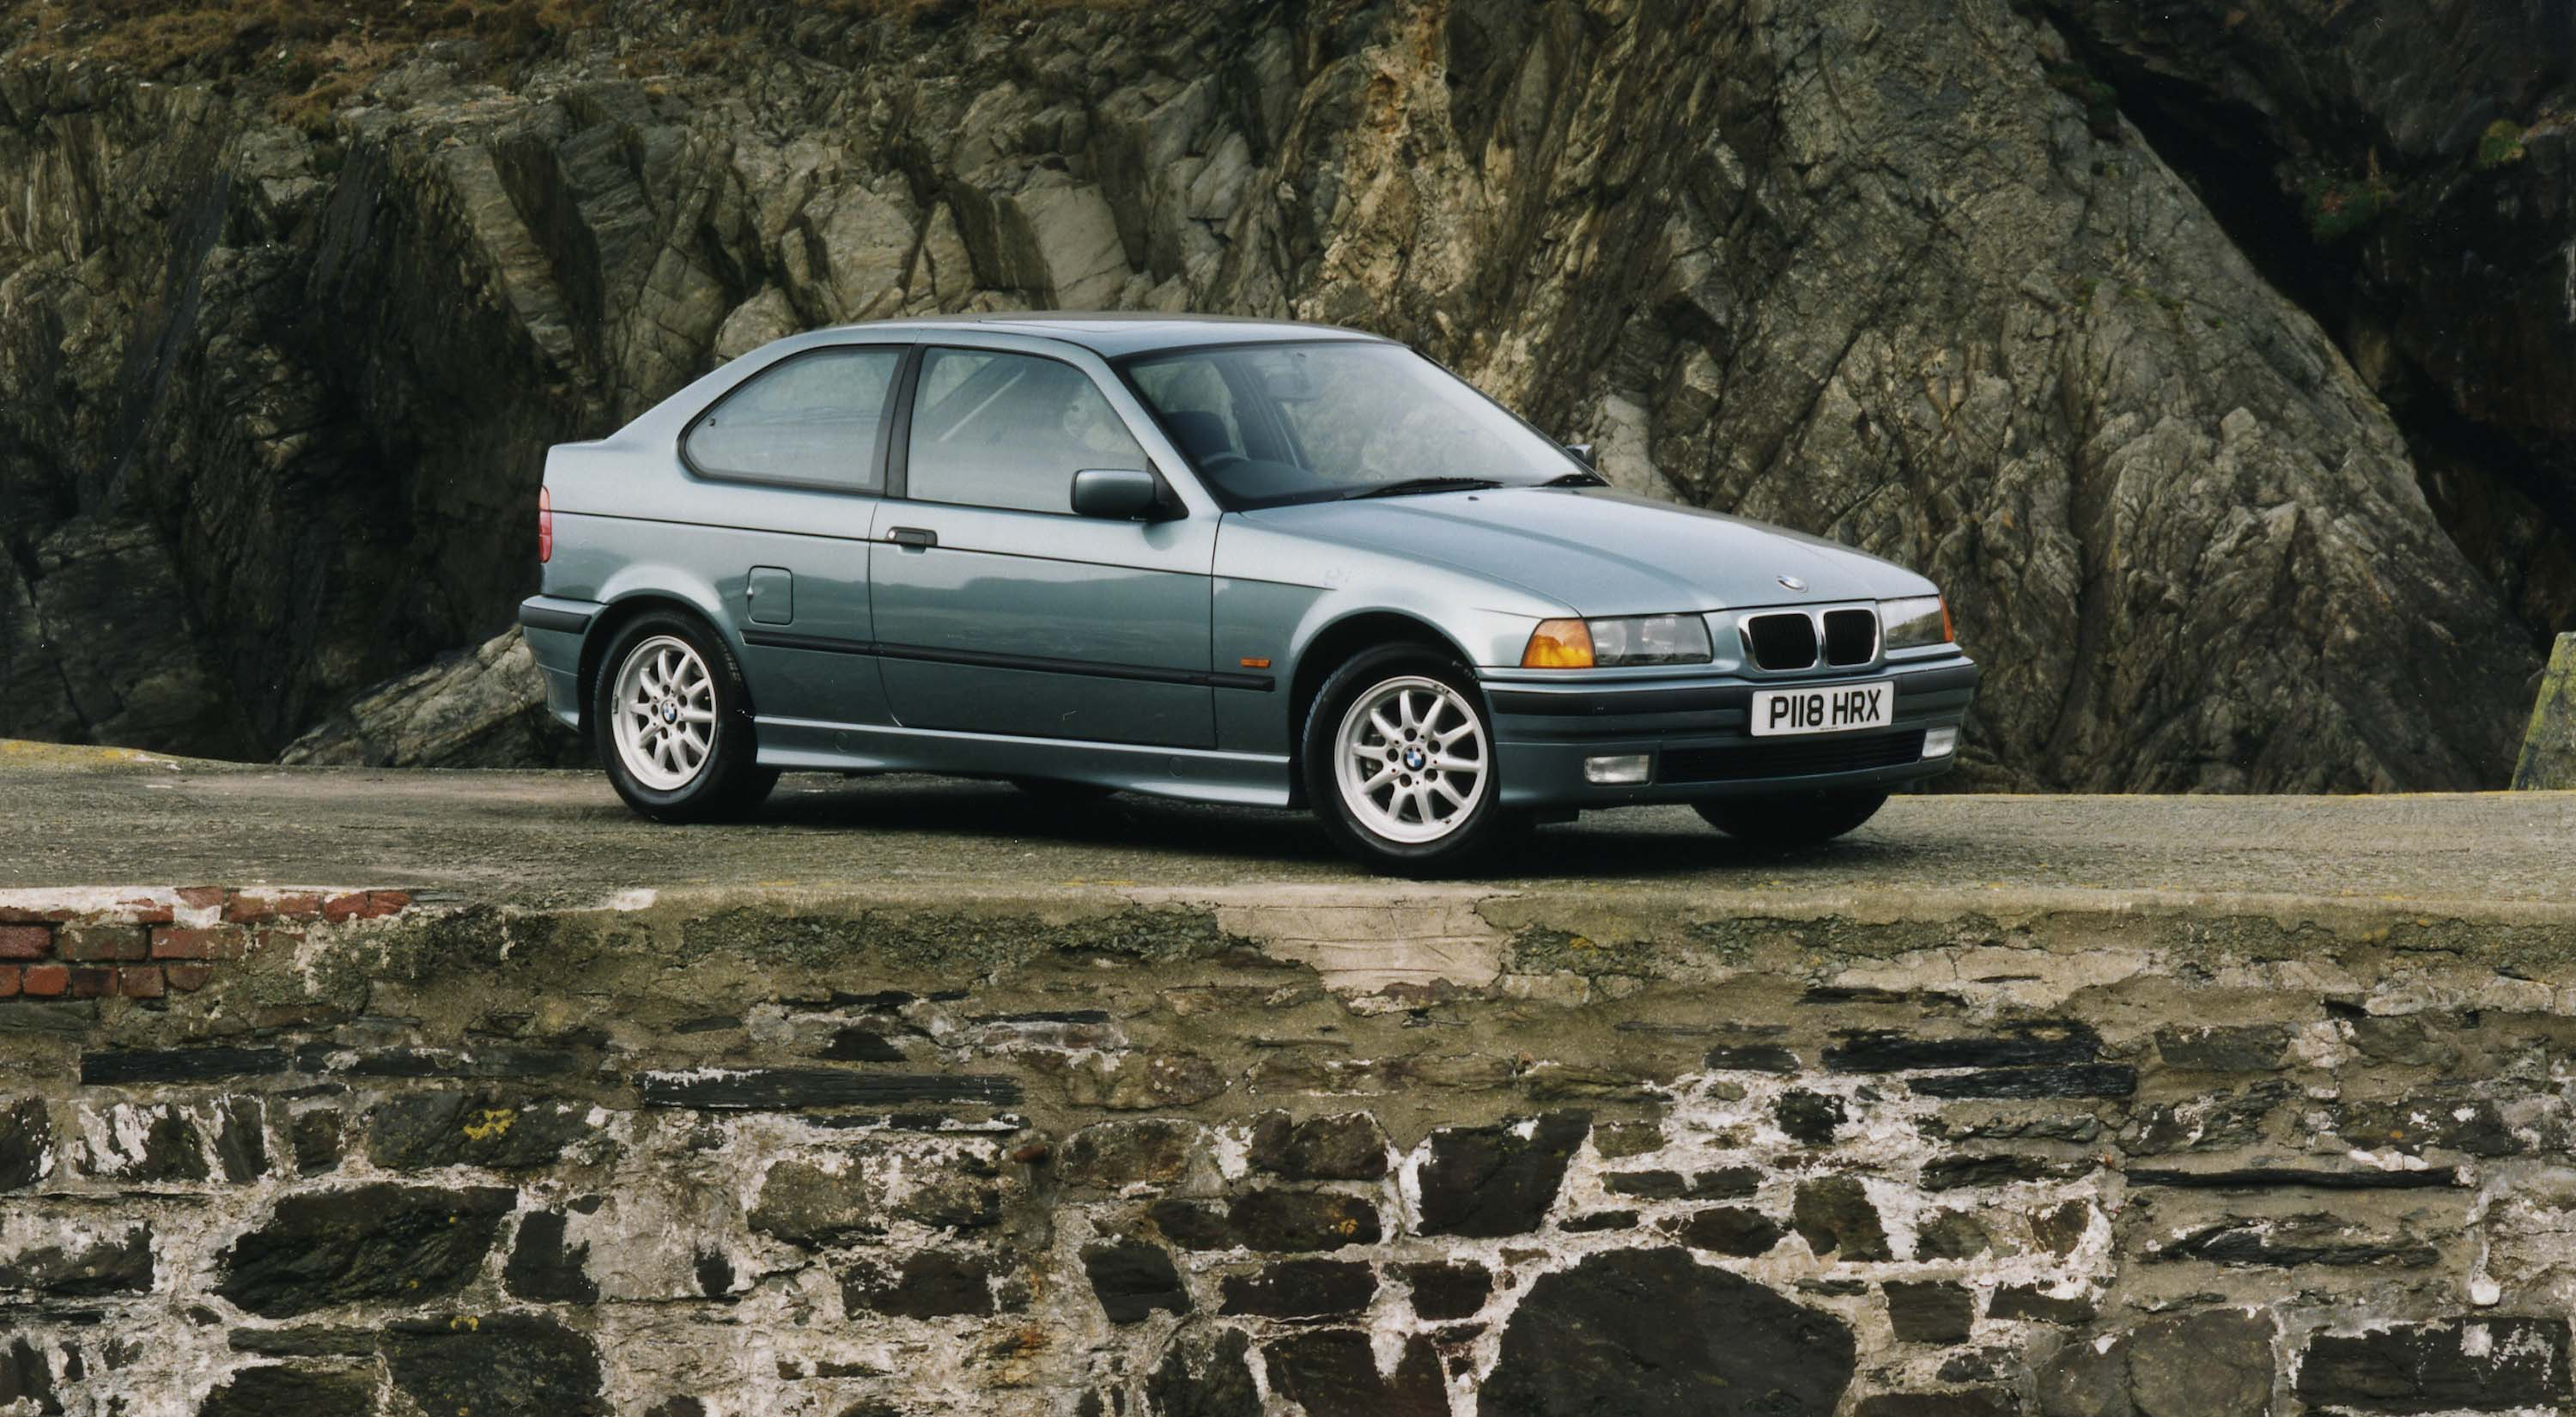 1993 e36 5 bmw 3 series compact 318ti photo gallery between the axles. Black Bedroom Furniture Sets. Home Design Ideas